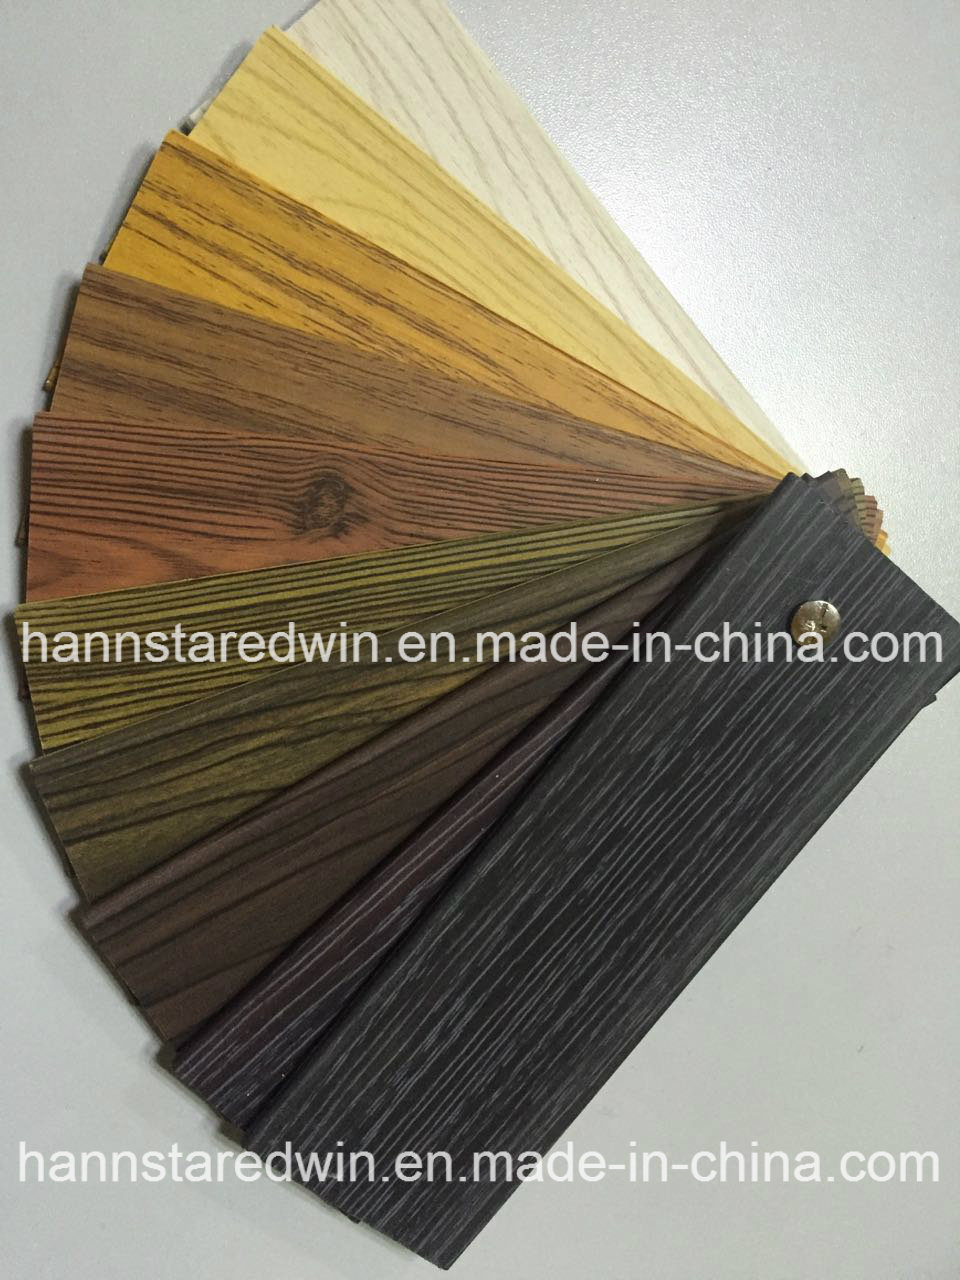 Outdoor&Interior PVC (PVC composite decorative board) Wainscot Boards pictures & photos